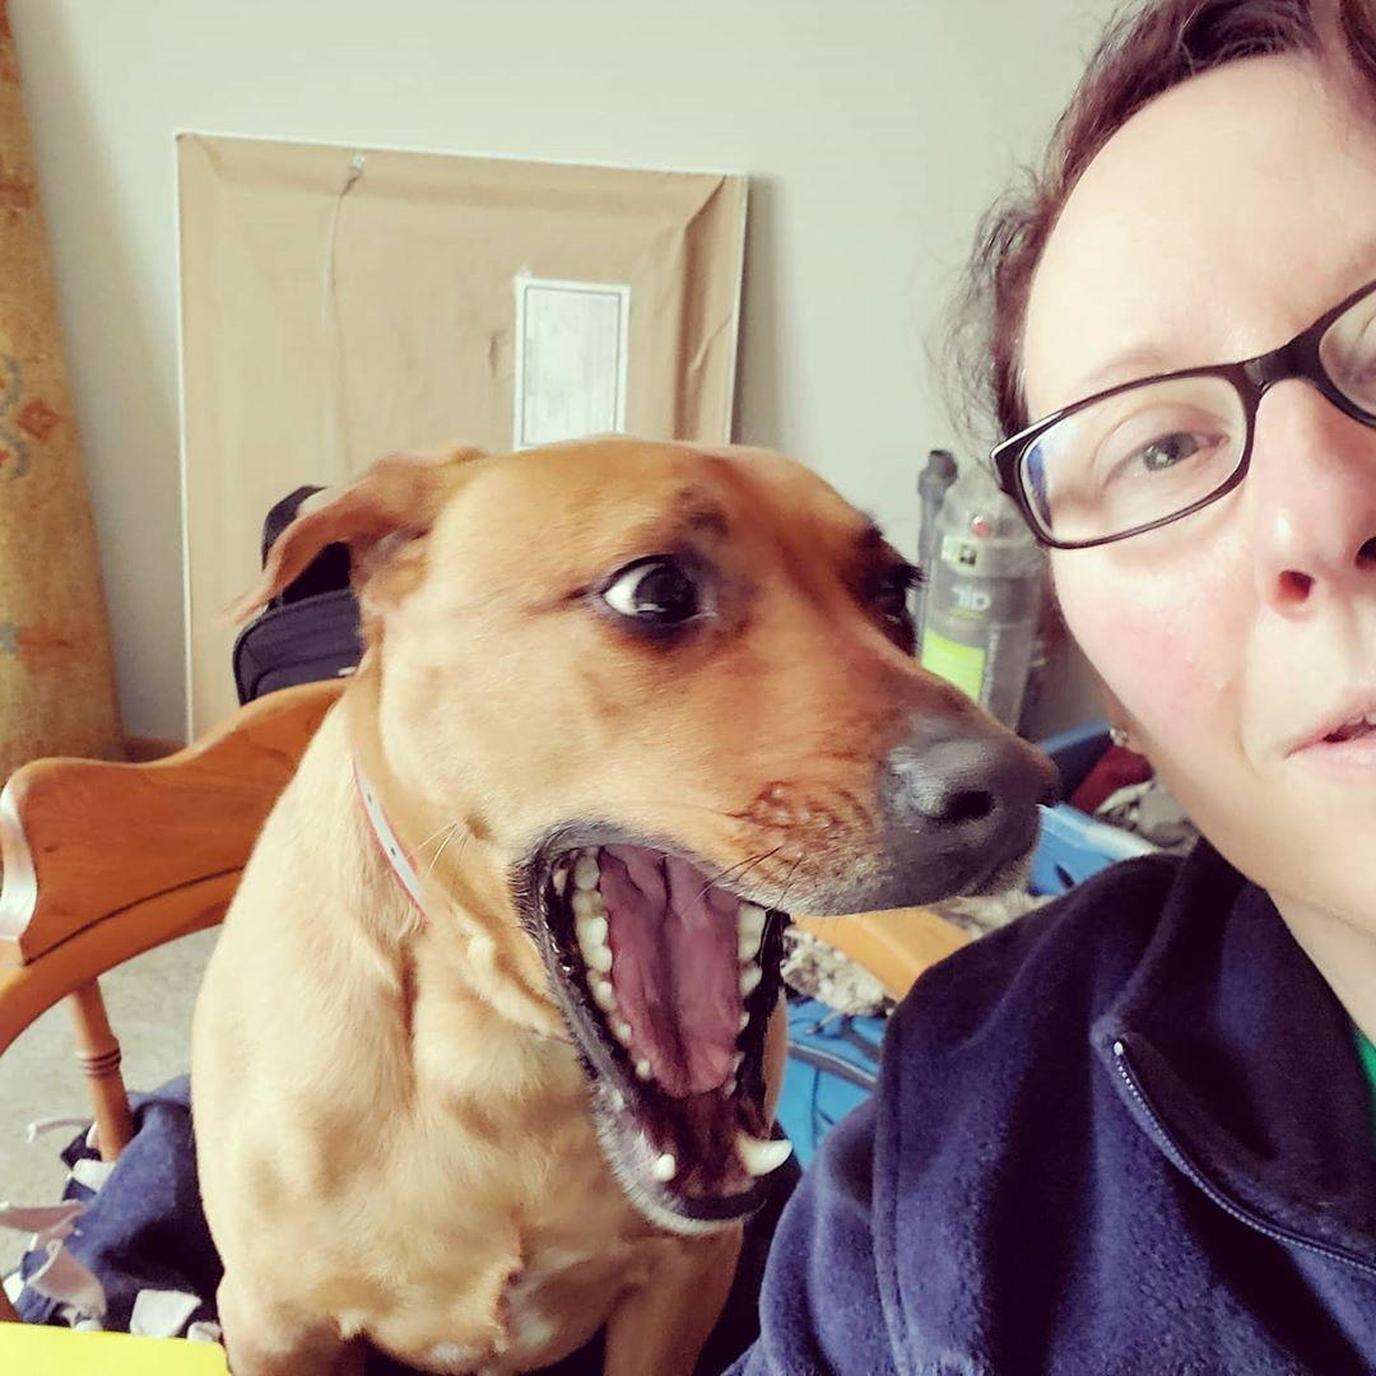 A Dog Barks at a Woman Working From Home.